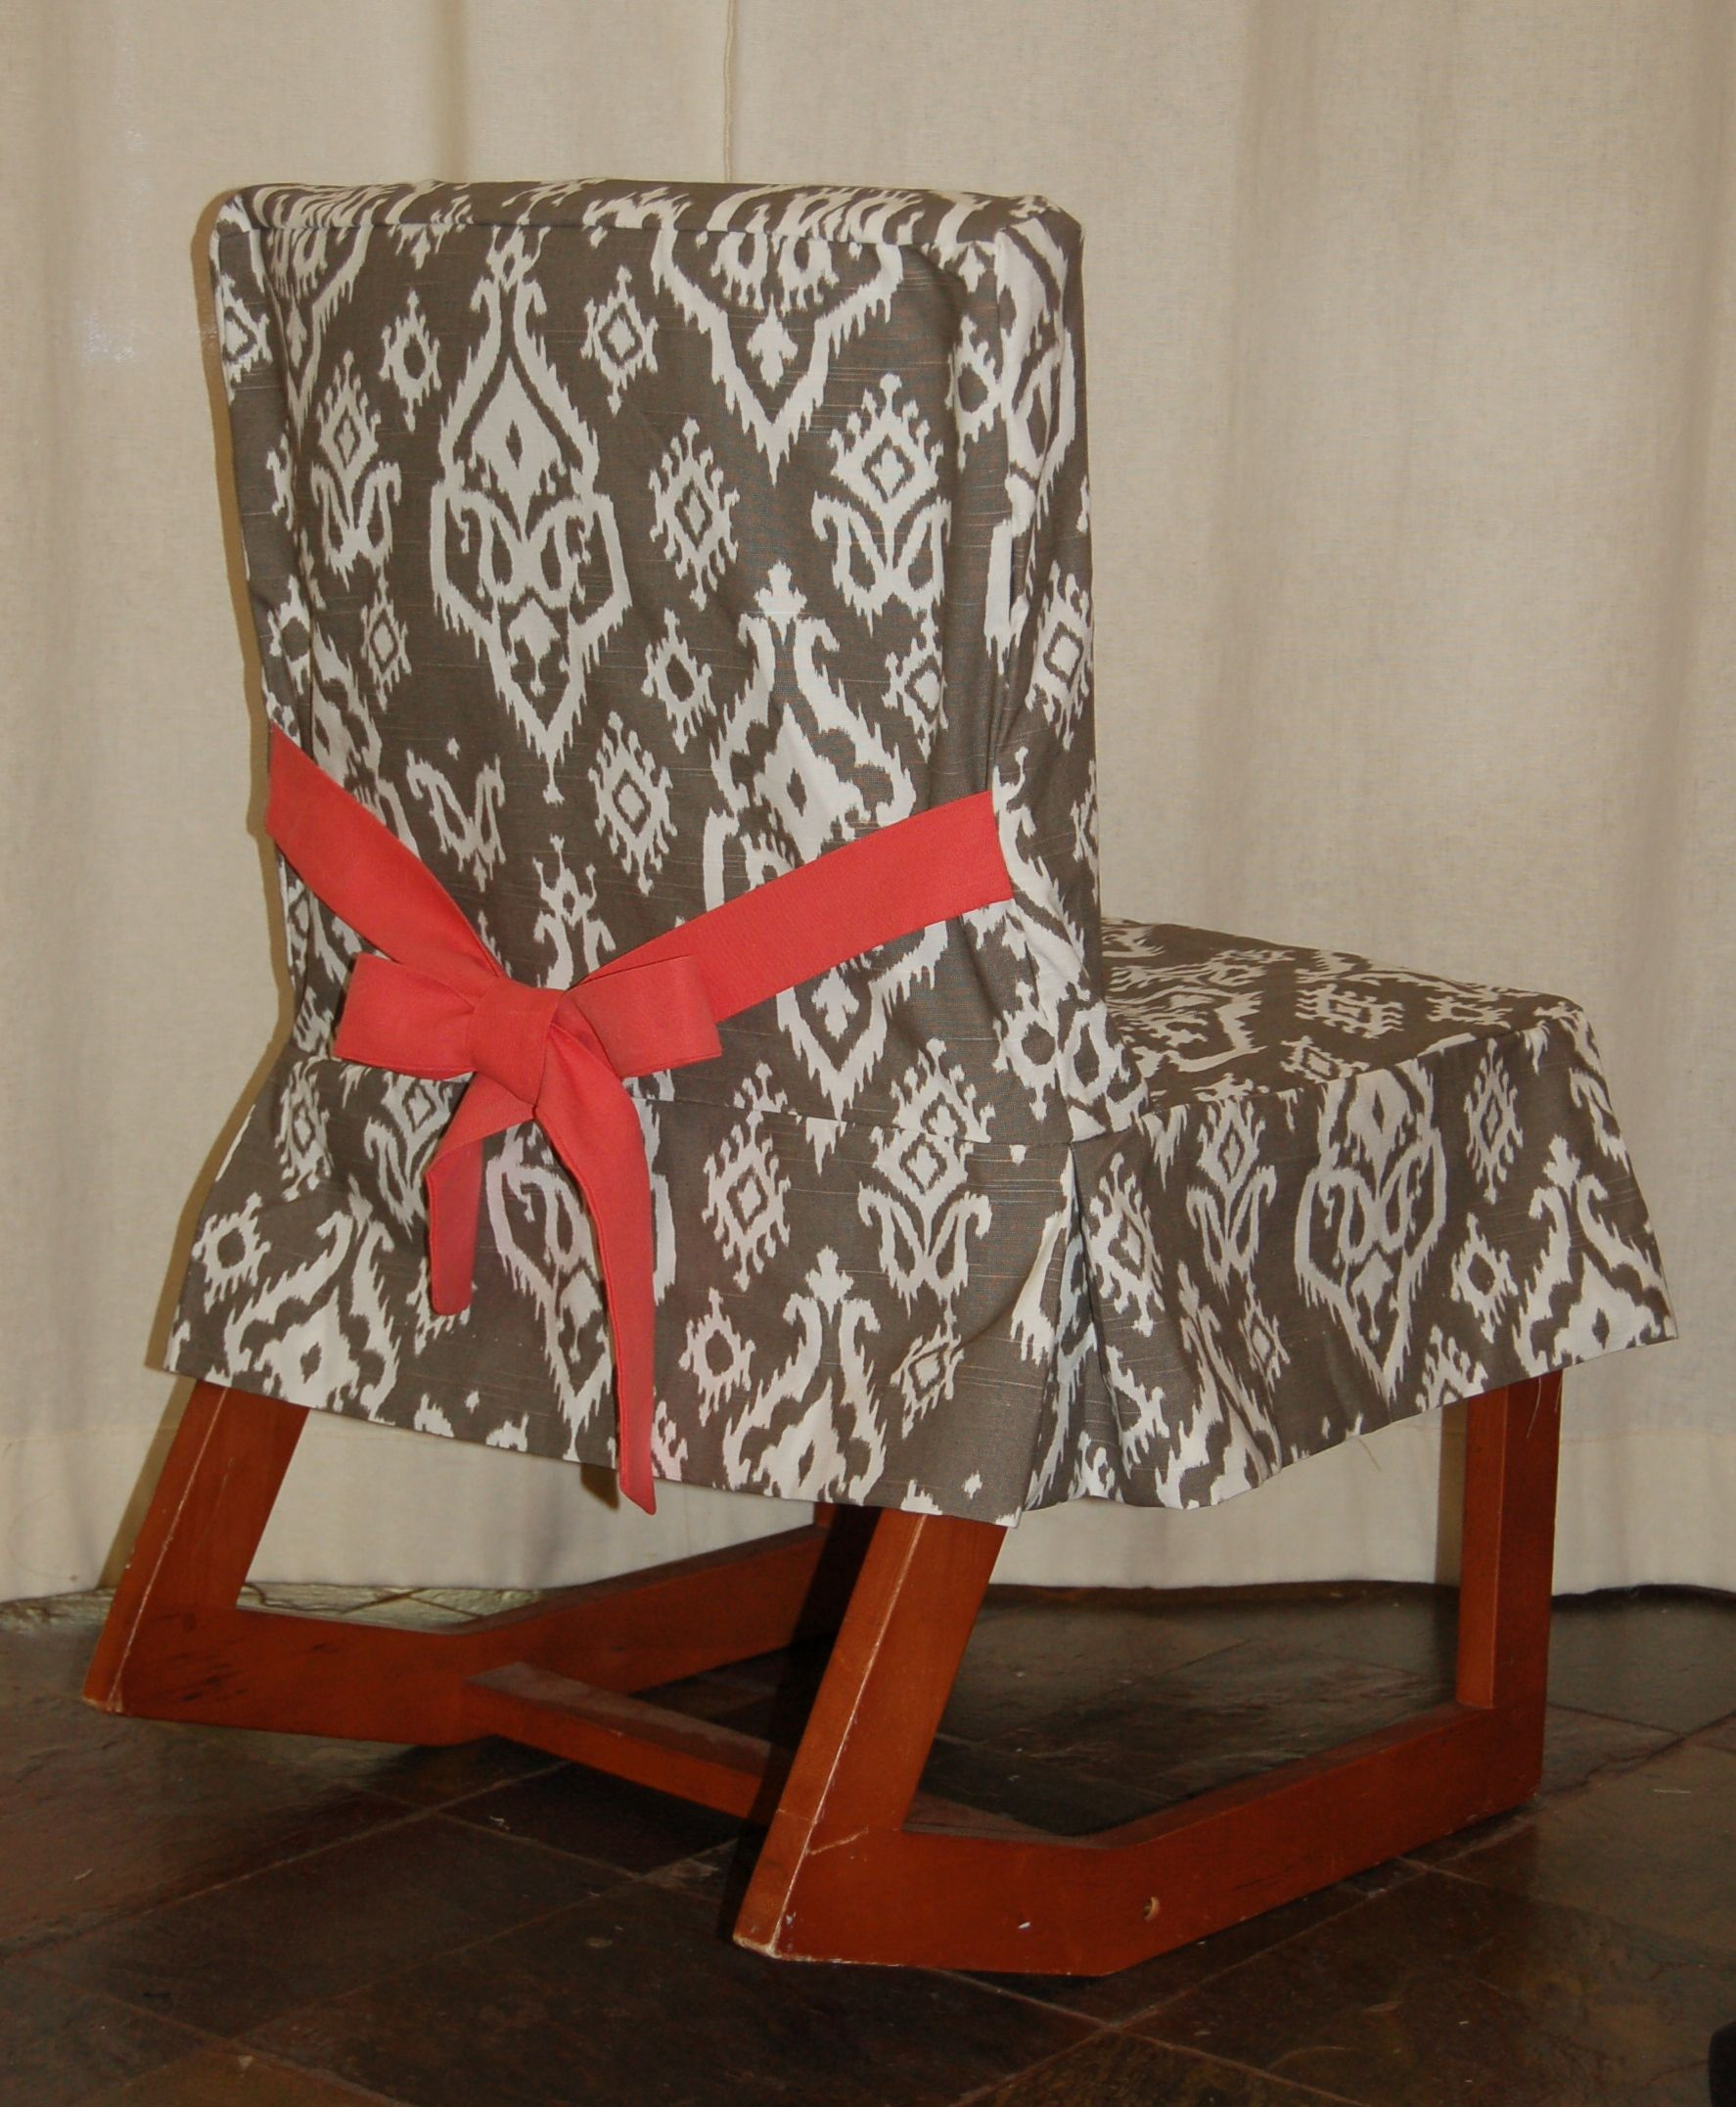 Dorm Room Chairs Chair Slipcover Dorm Suite Dorm Dorm Room Chair Covers